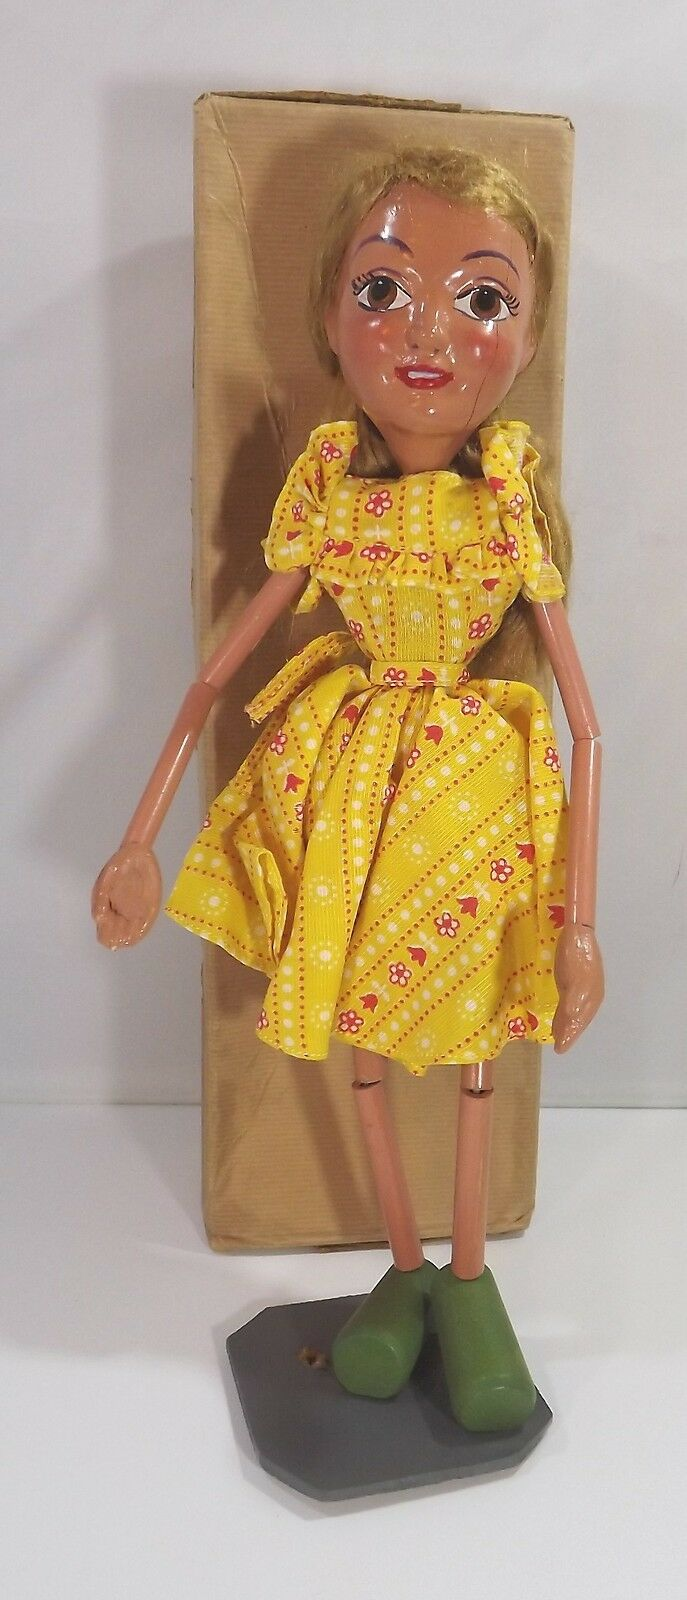 Boxed Vintage 1940s 50s Pelham Puppets Bendy Bendipup Girl Type SL Display Piece